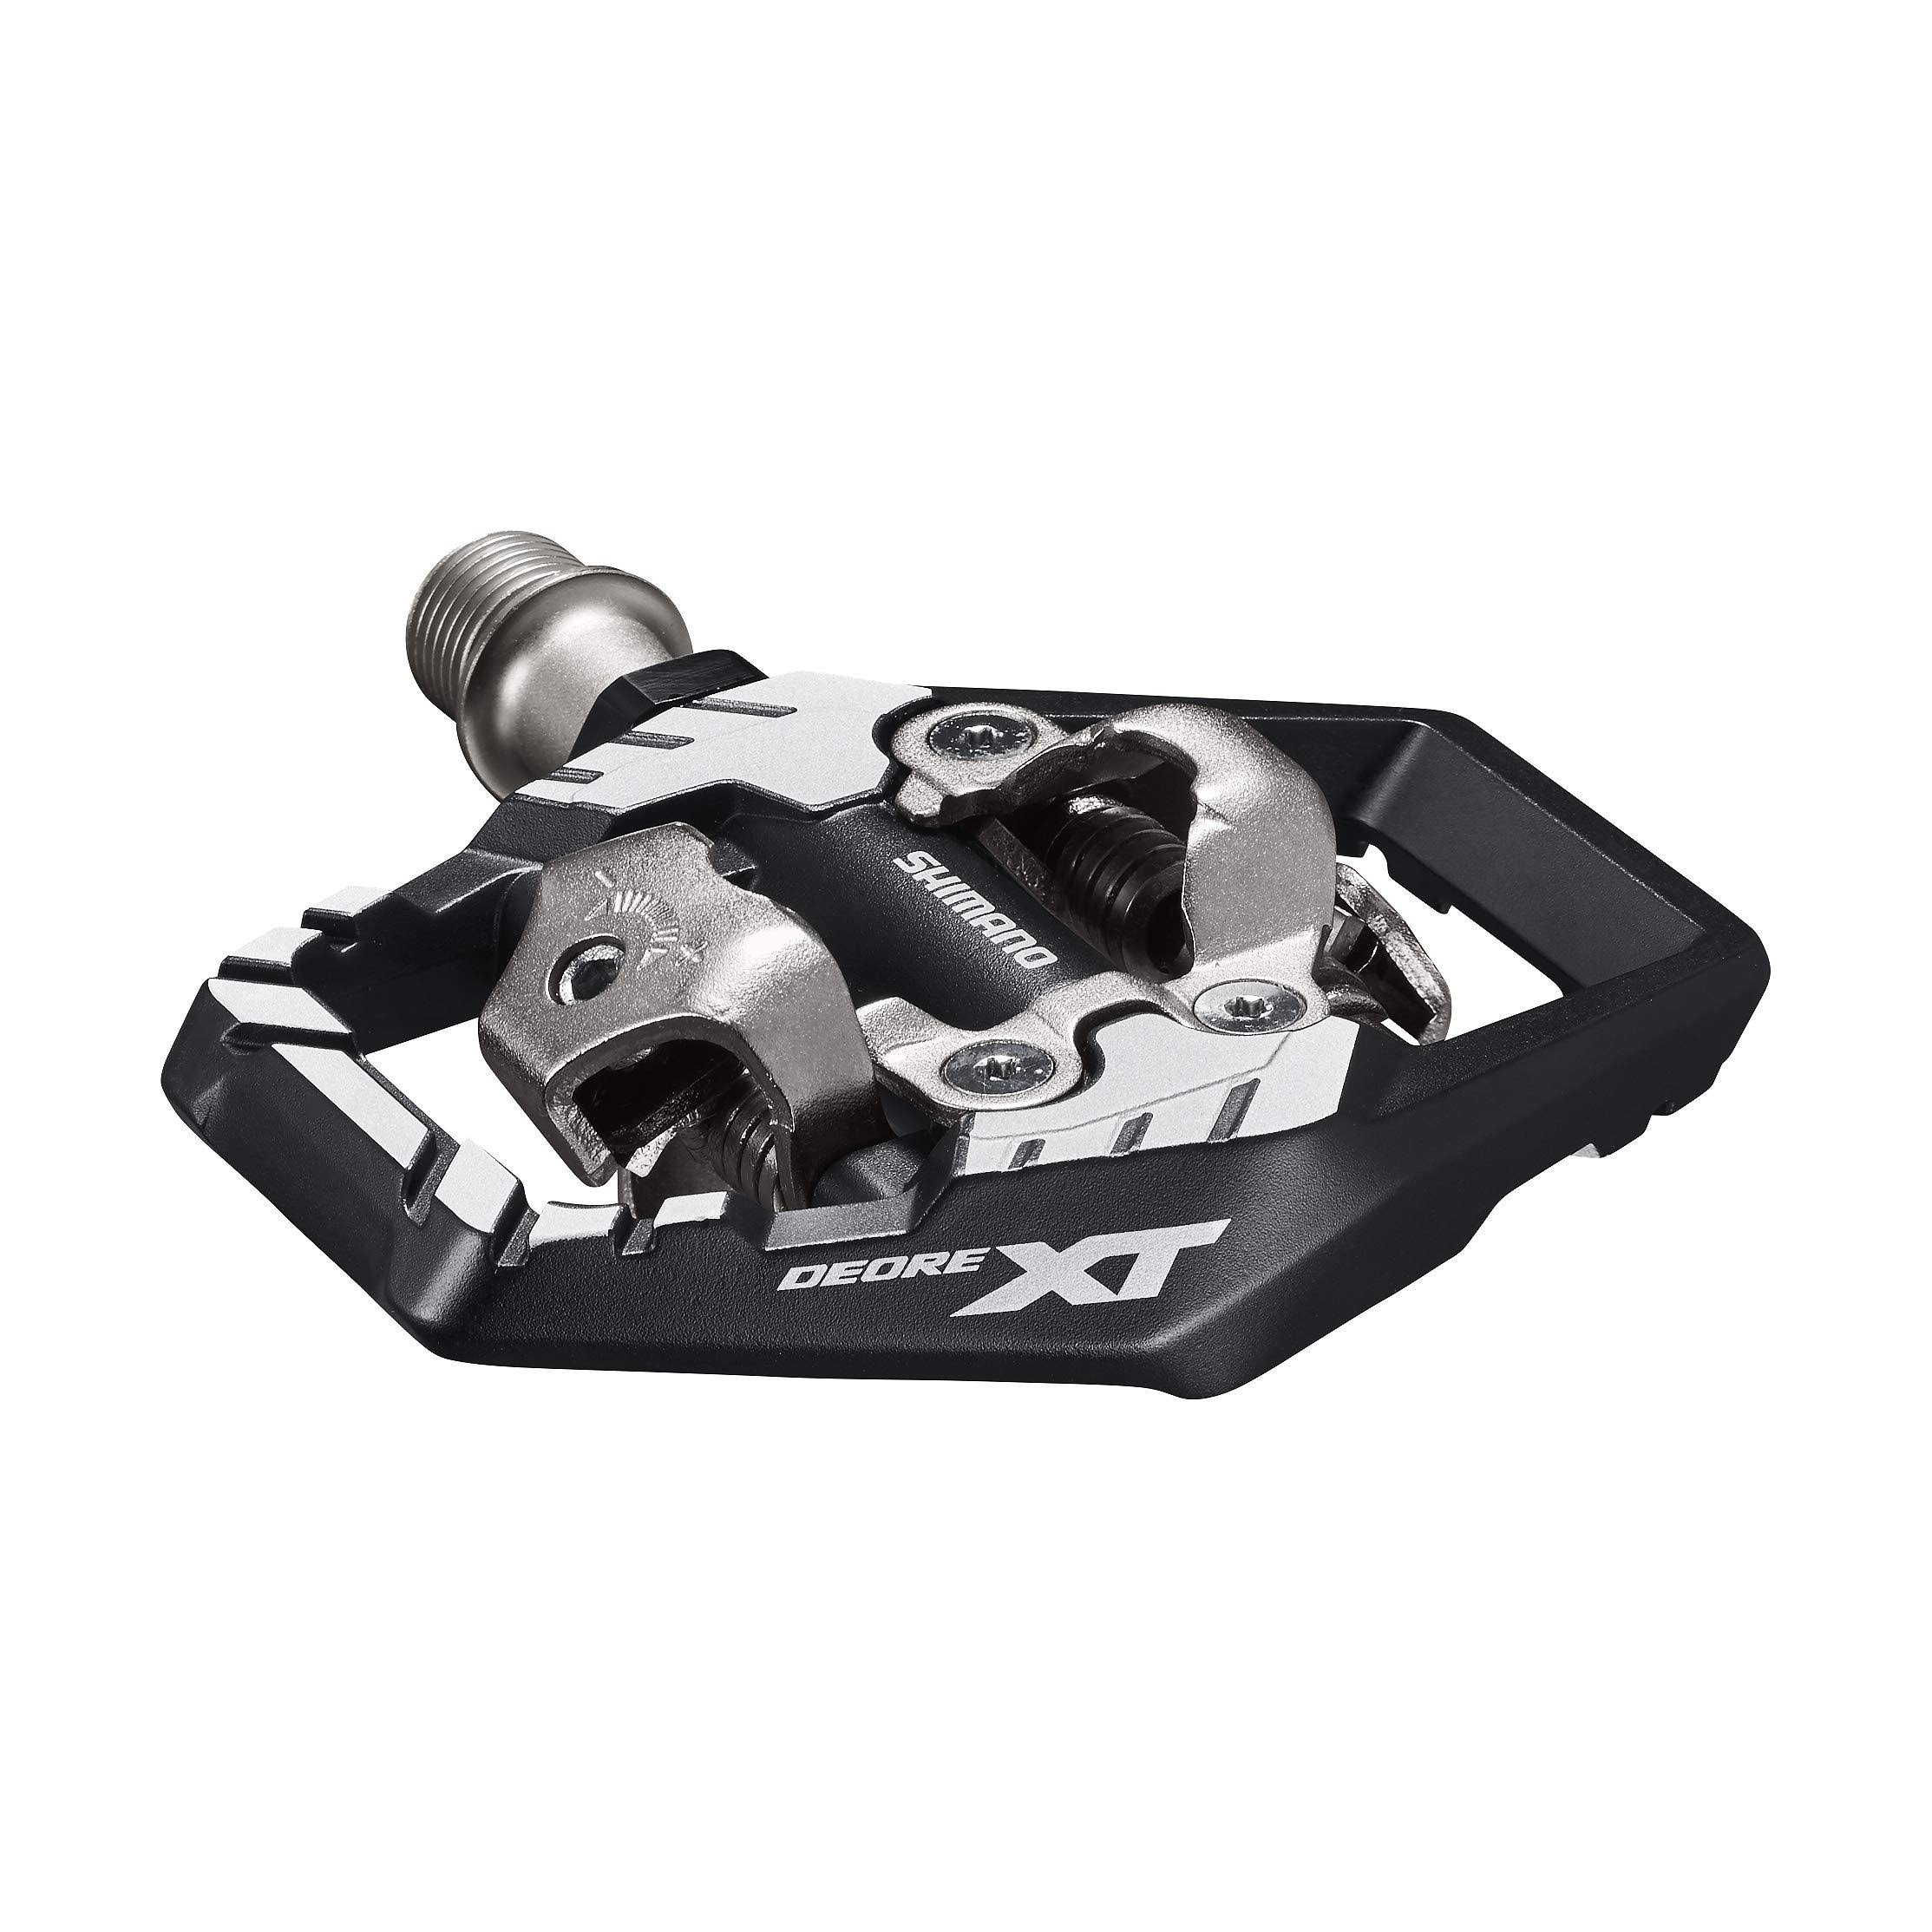 Shimano Deore XT SPD Trail PD M8120 MTB Pedals - with Cleats